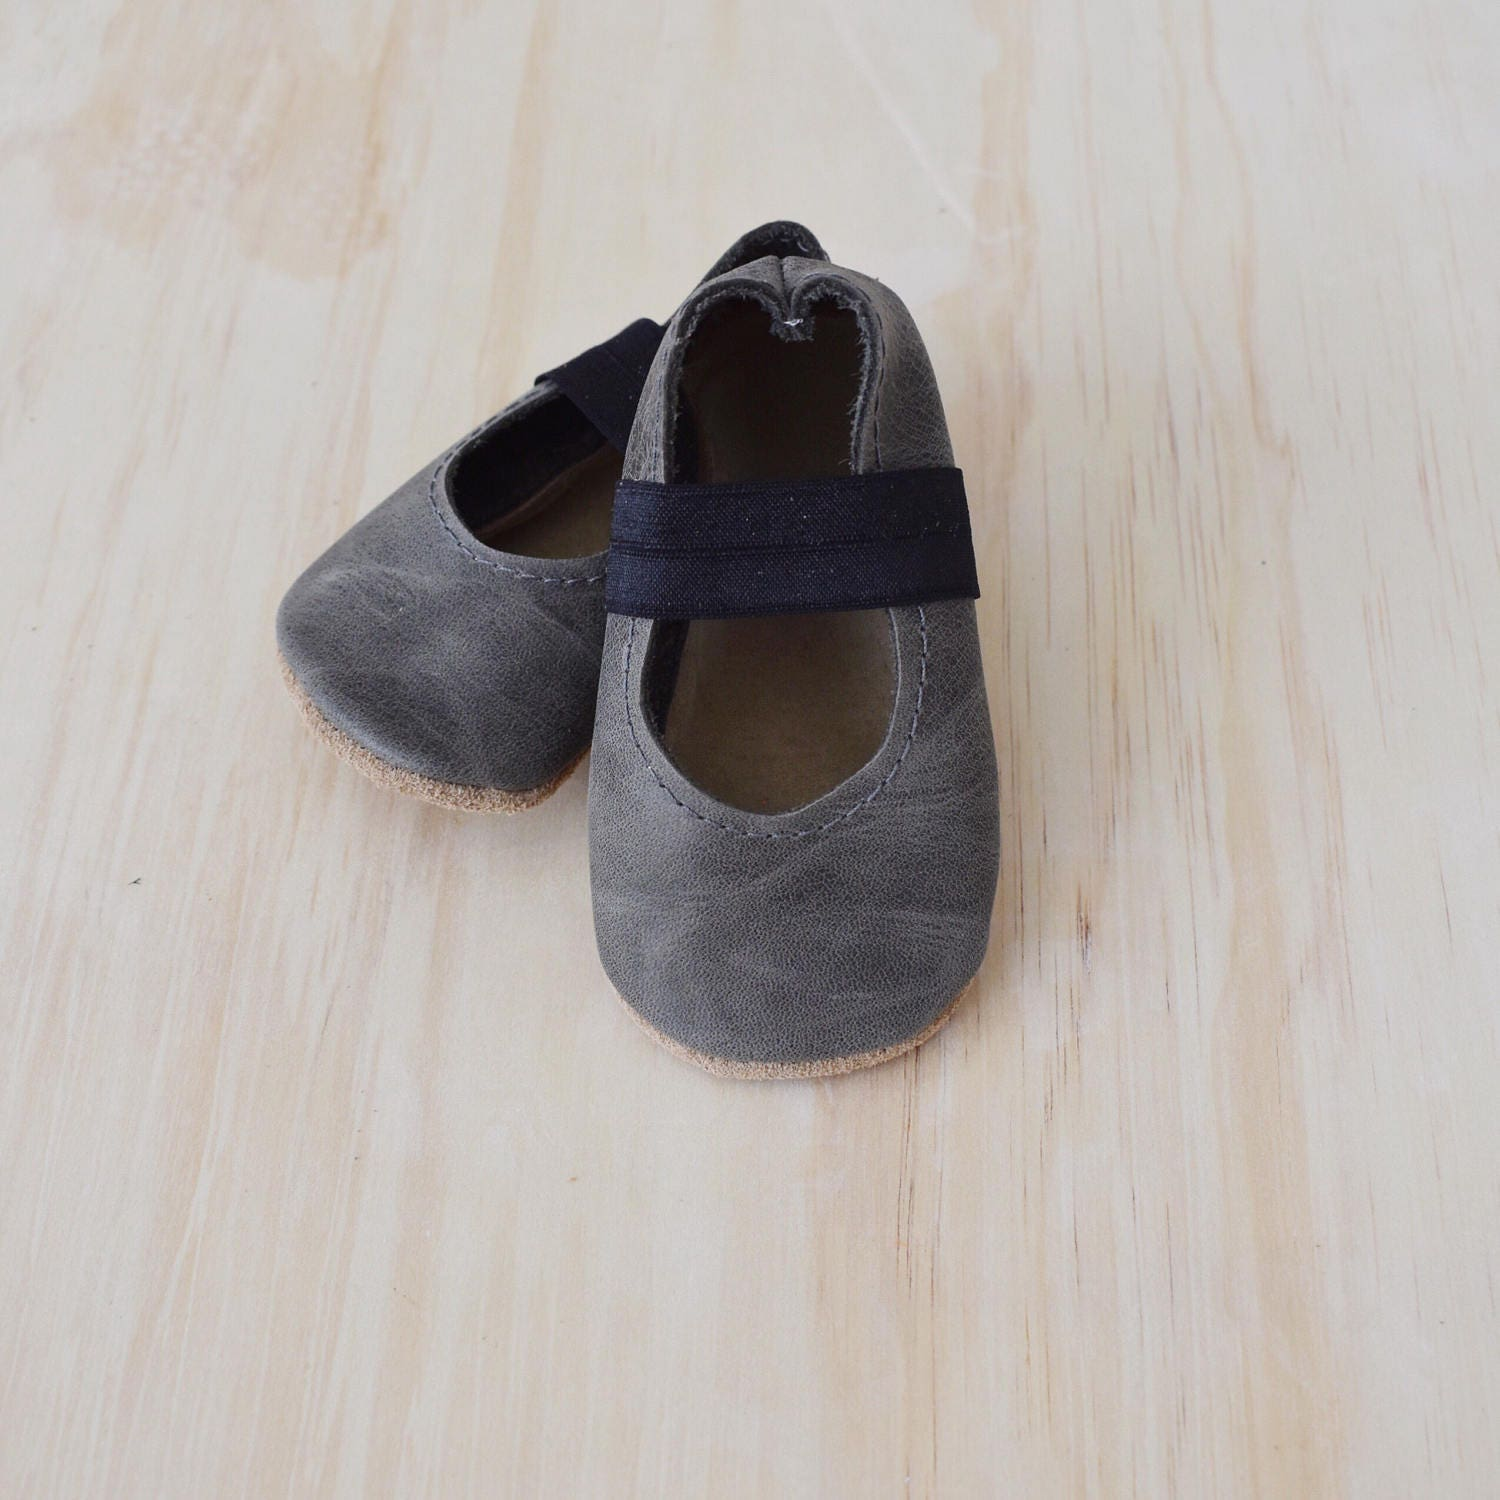 c317ecffd95 ... soft soled shoes   baby shoes   moccs   baby moccasins   weathered  slate. gallery photo ...